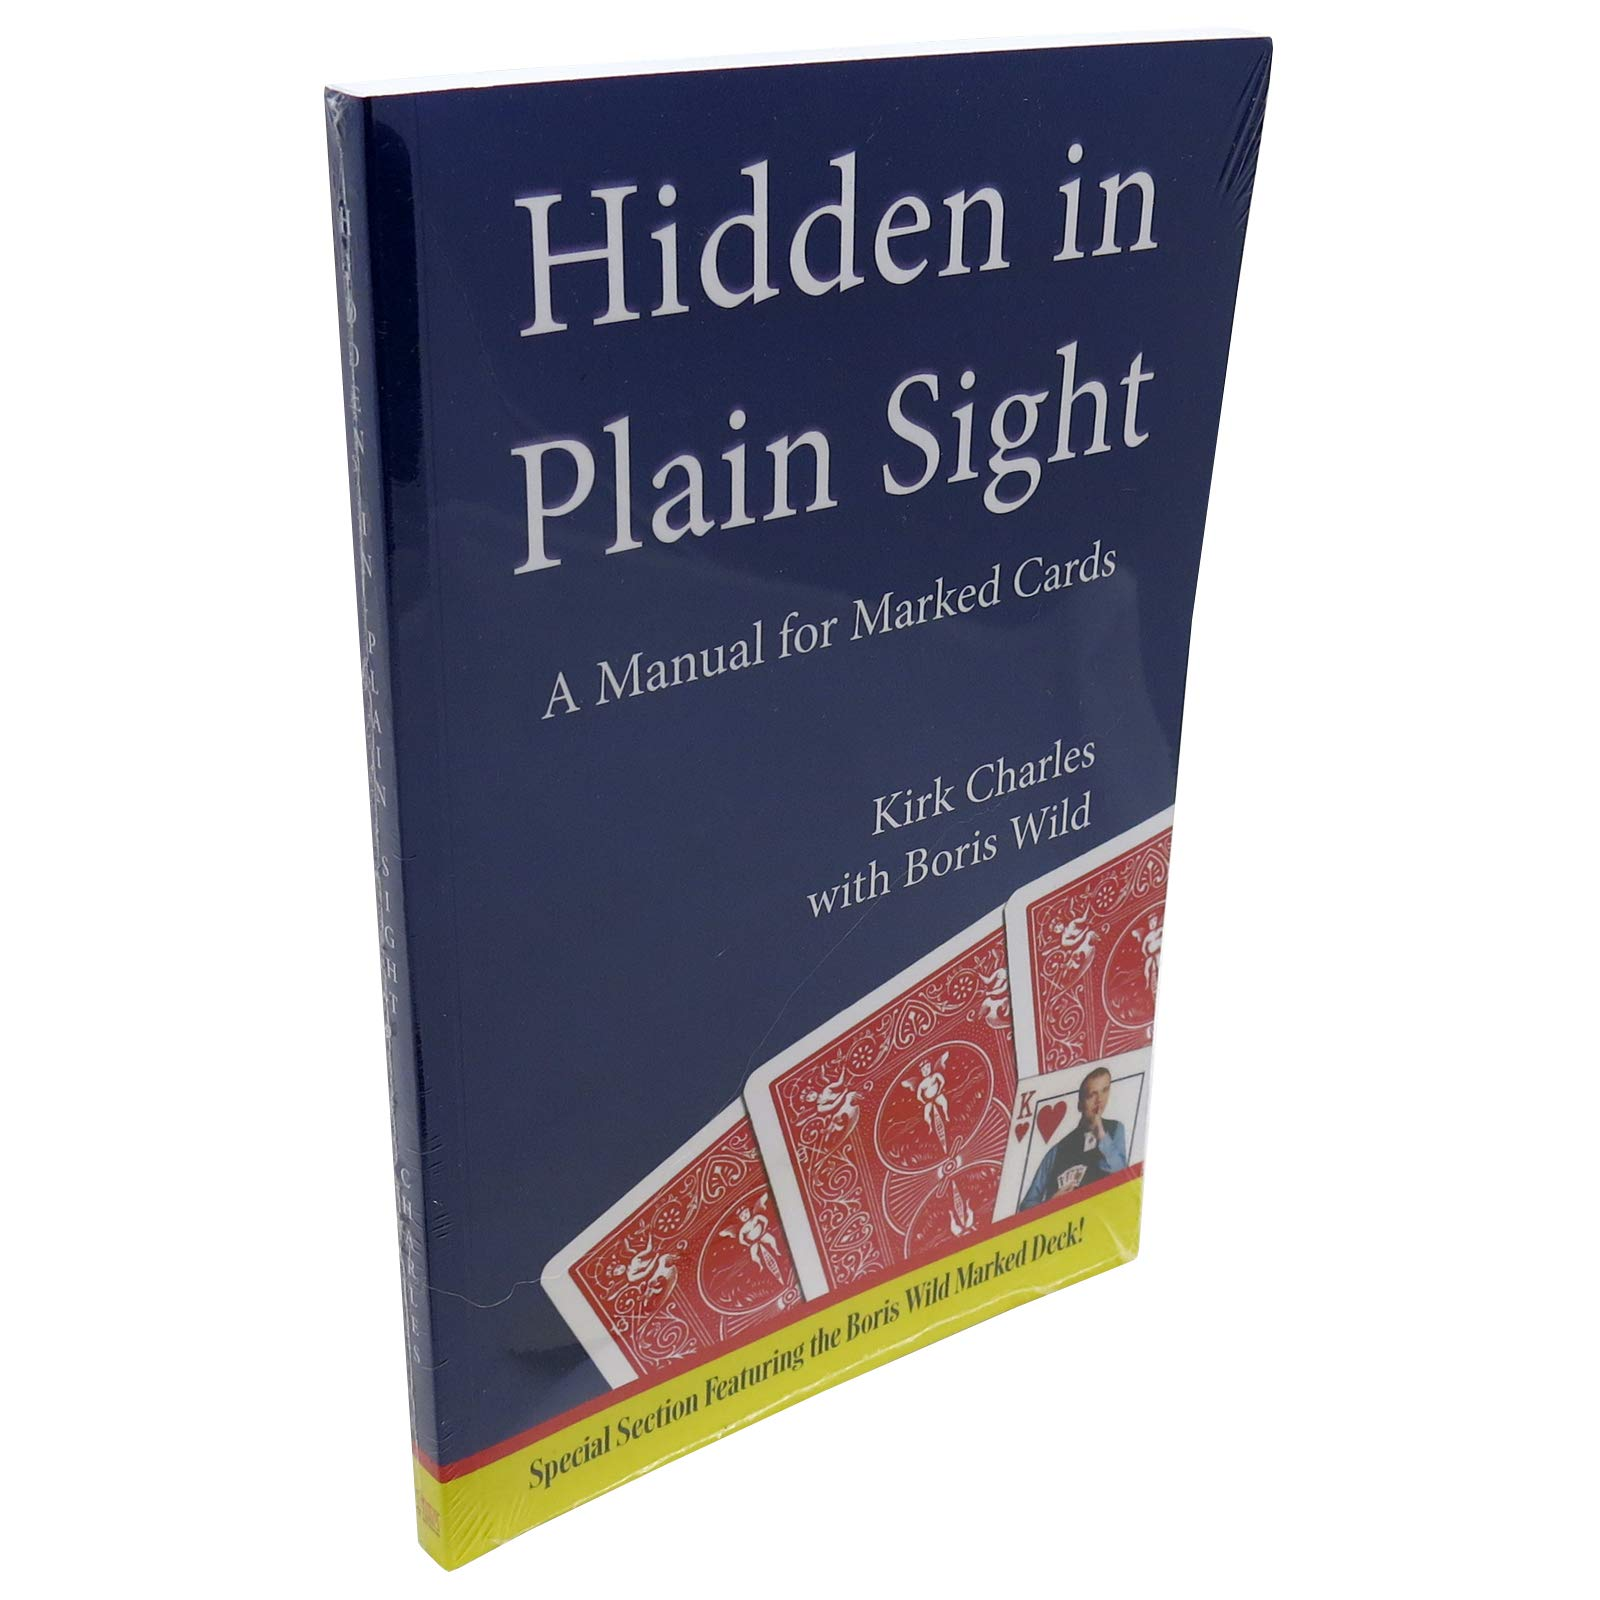 Royal Magic Hidden in Plain Sight - The Most Complete Manual for Marked Cards Ever Published!